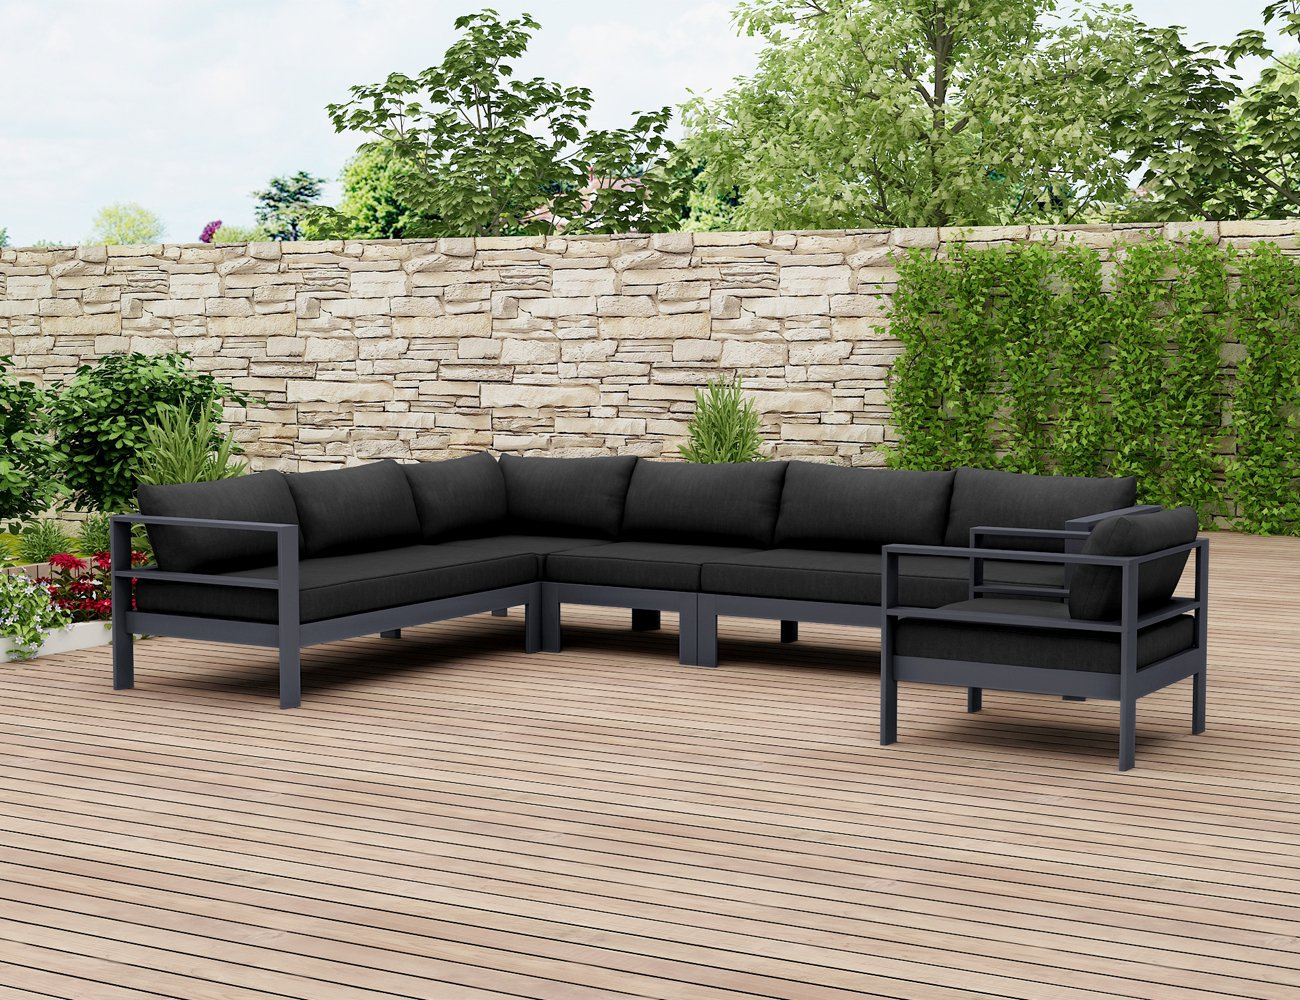 Sandpiper Outdoor Lounge Setting - Grey